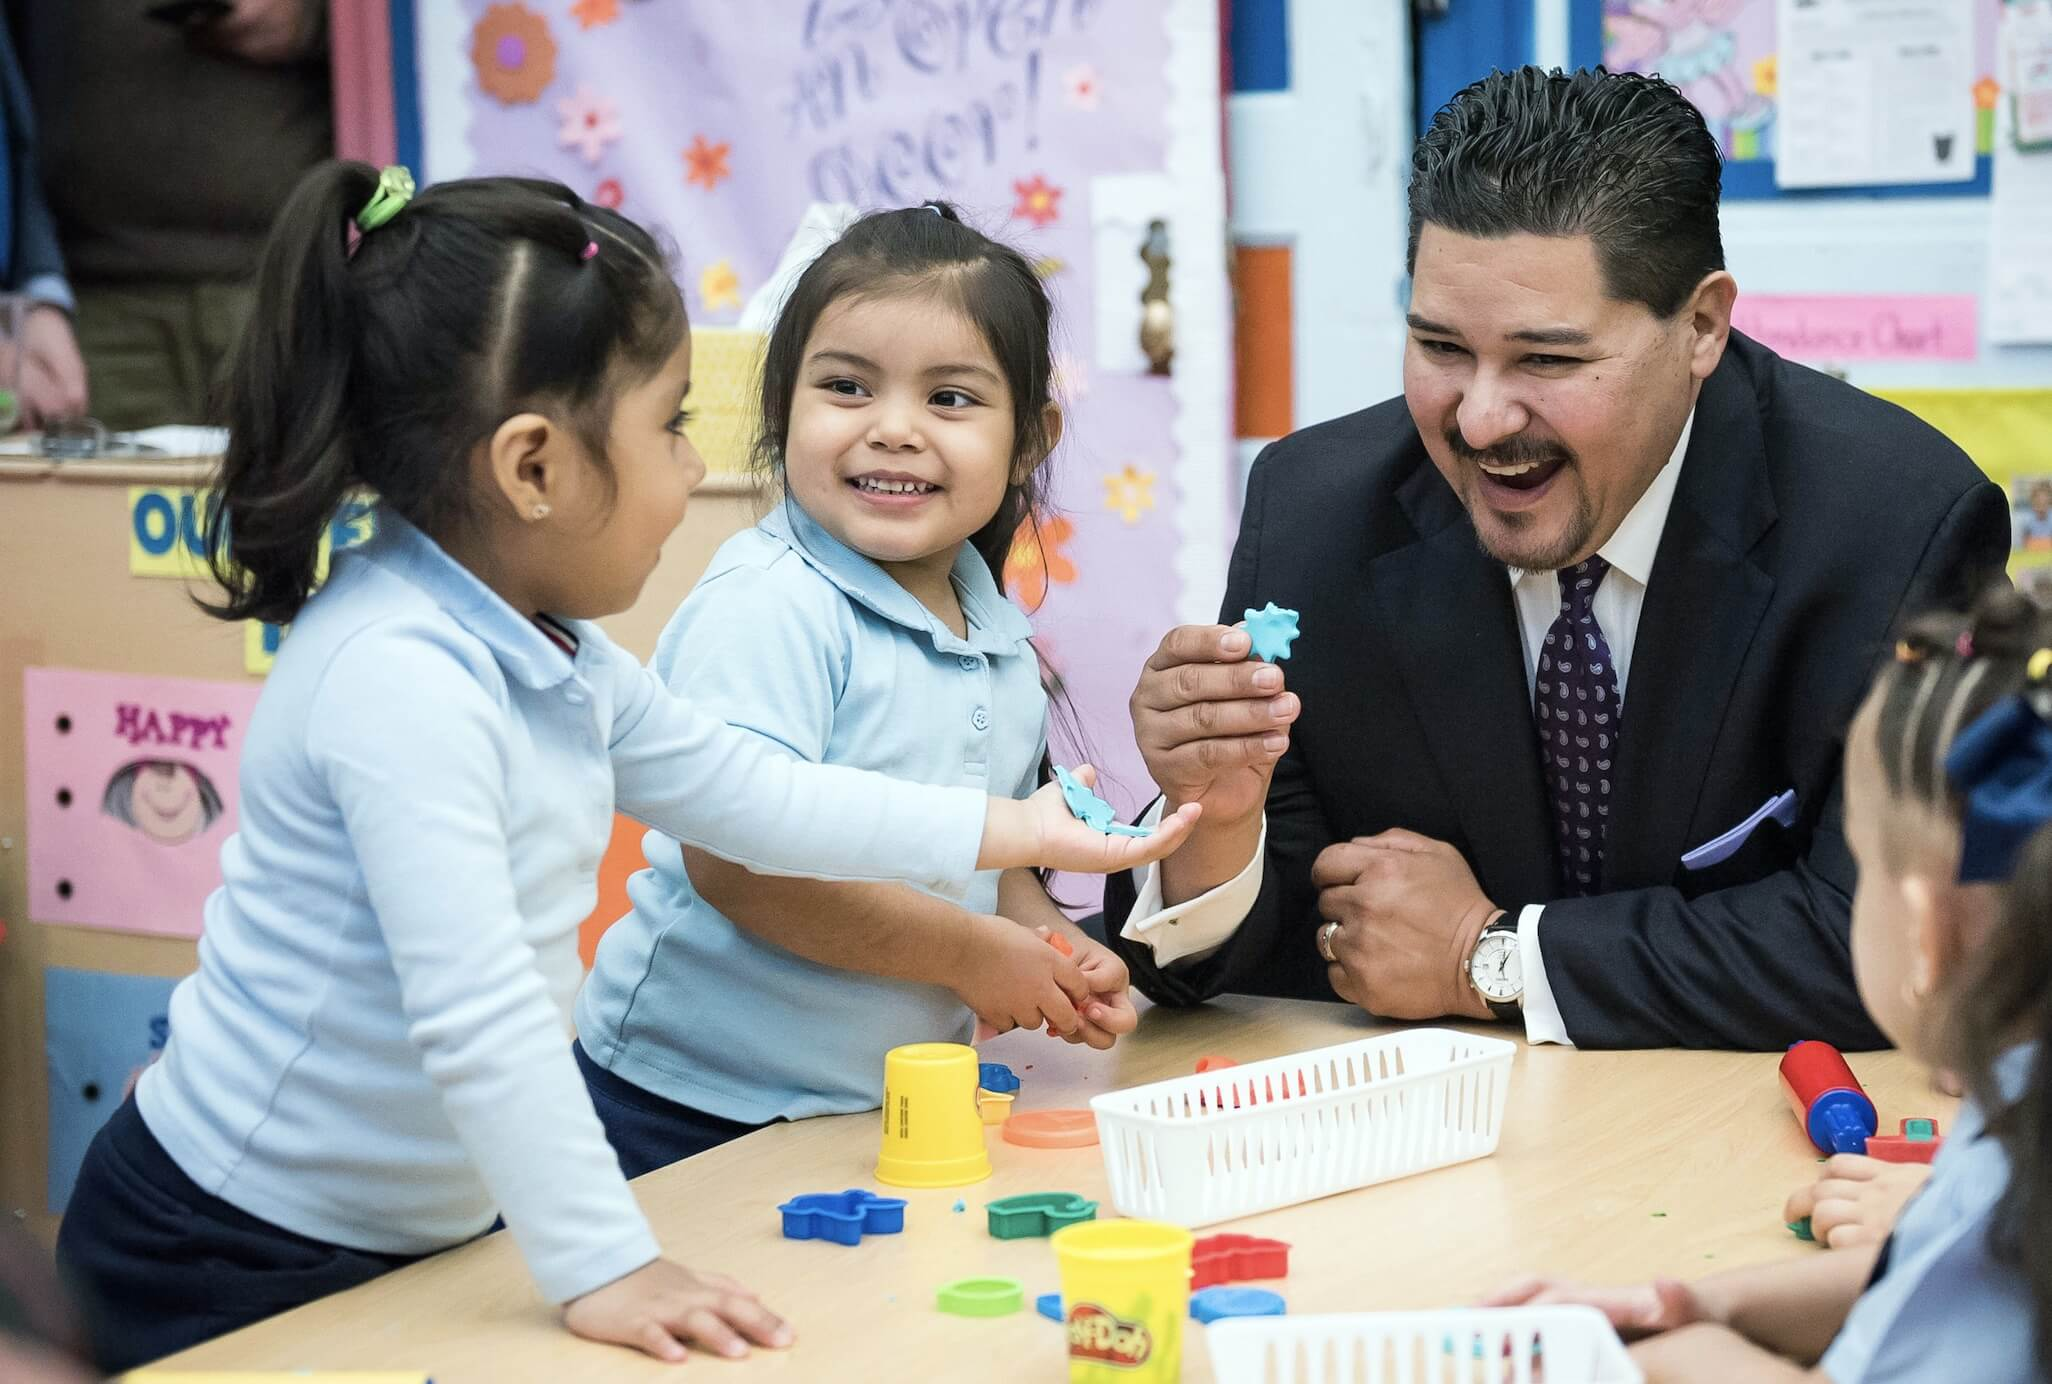 NYC DOE Chancellor Carranza with pre-k students